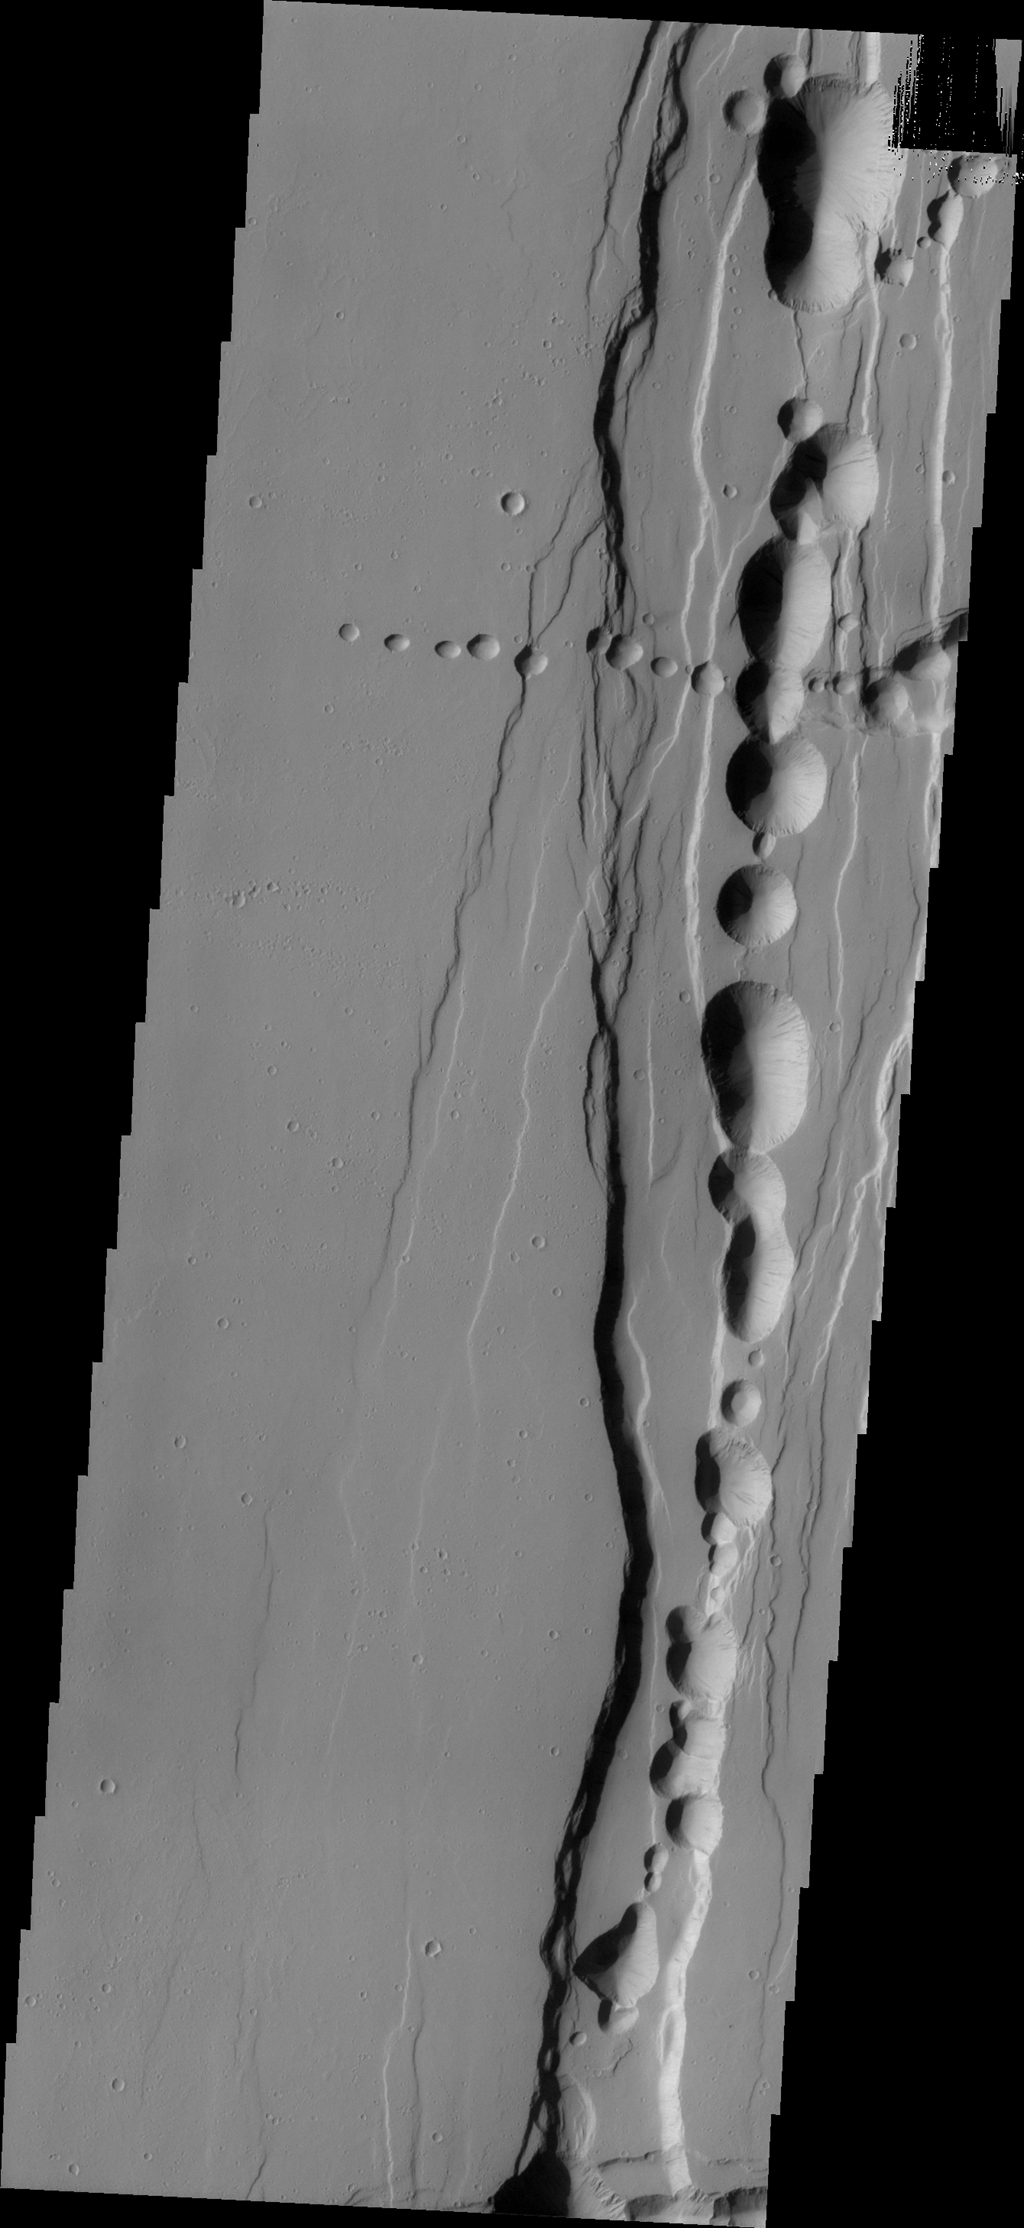 Tractus Catena is a series of collapse pits and fractures south of Alba Mons as seen in this image from NASA's 2001 Mars Odyssey spacecraft. The collapse pits, which run in two directions in this image, are typically indicative of volcanic lava tubes.